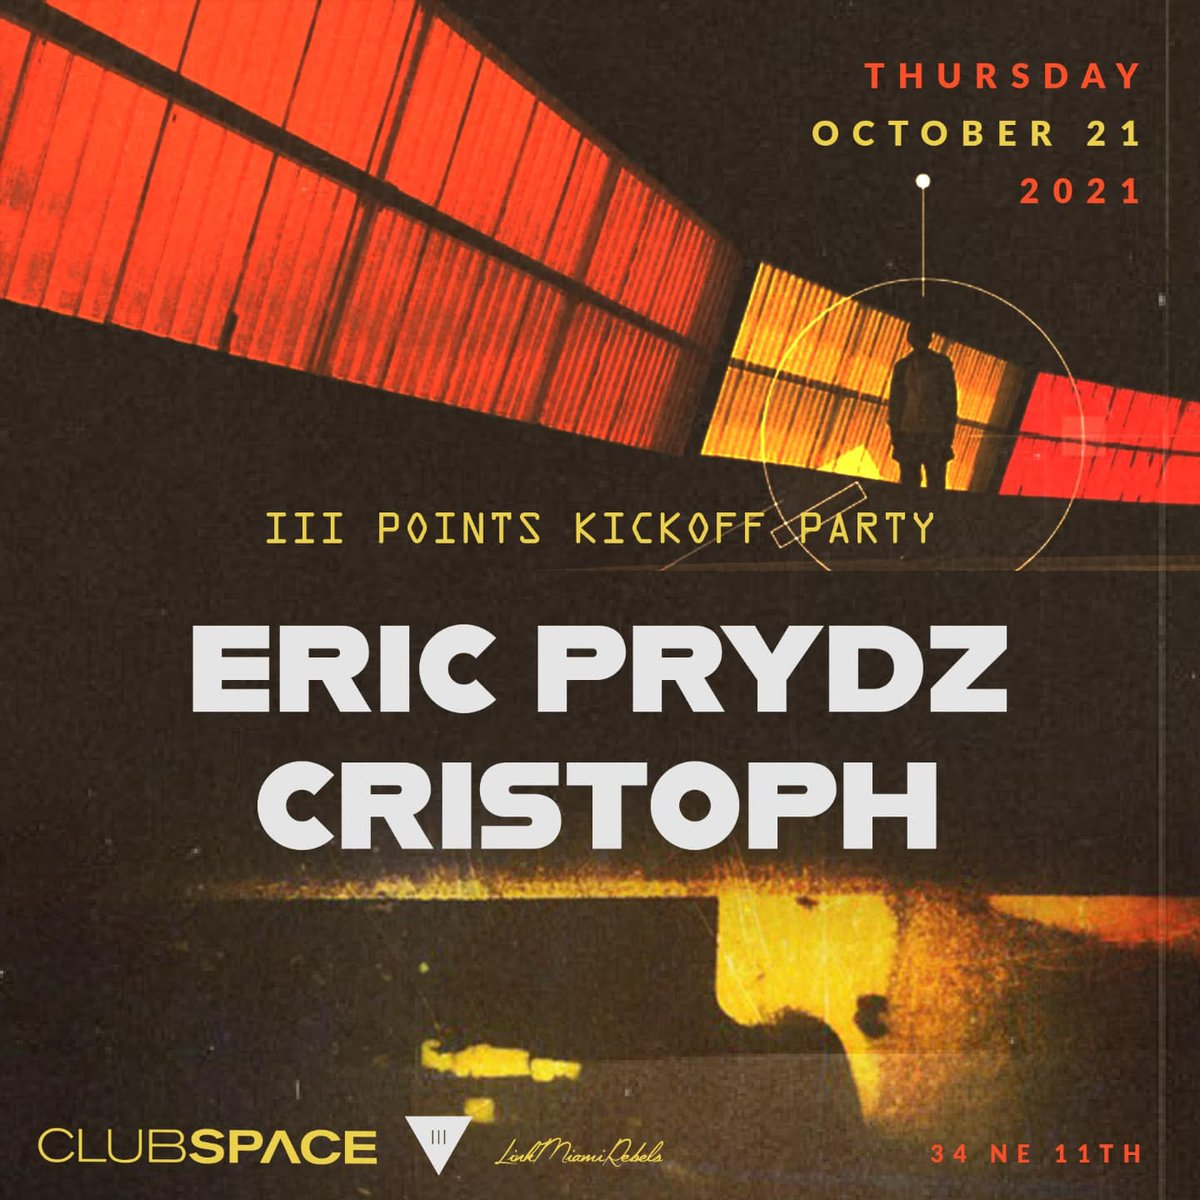 Just a few days to go until myself and @ericprydz take over The Terrace at @clubspacemiami for the @iiiPoints kickoff party 🙌 Tickets available here - eventbrite.com/e/eric-prydz-c…